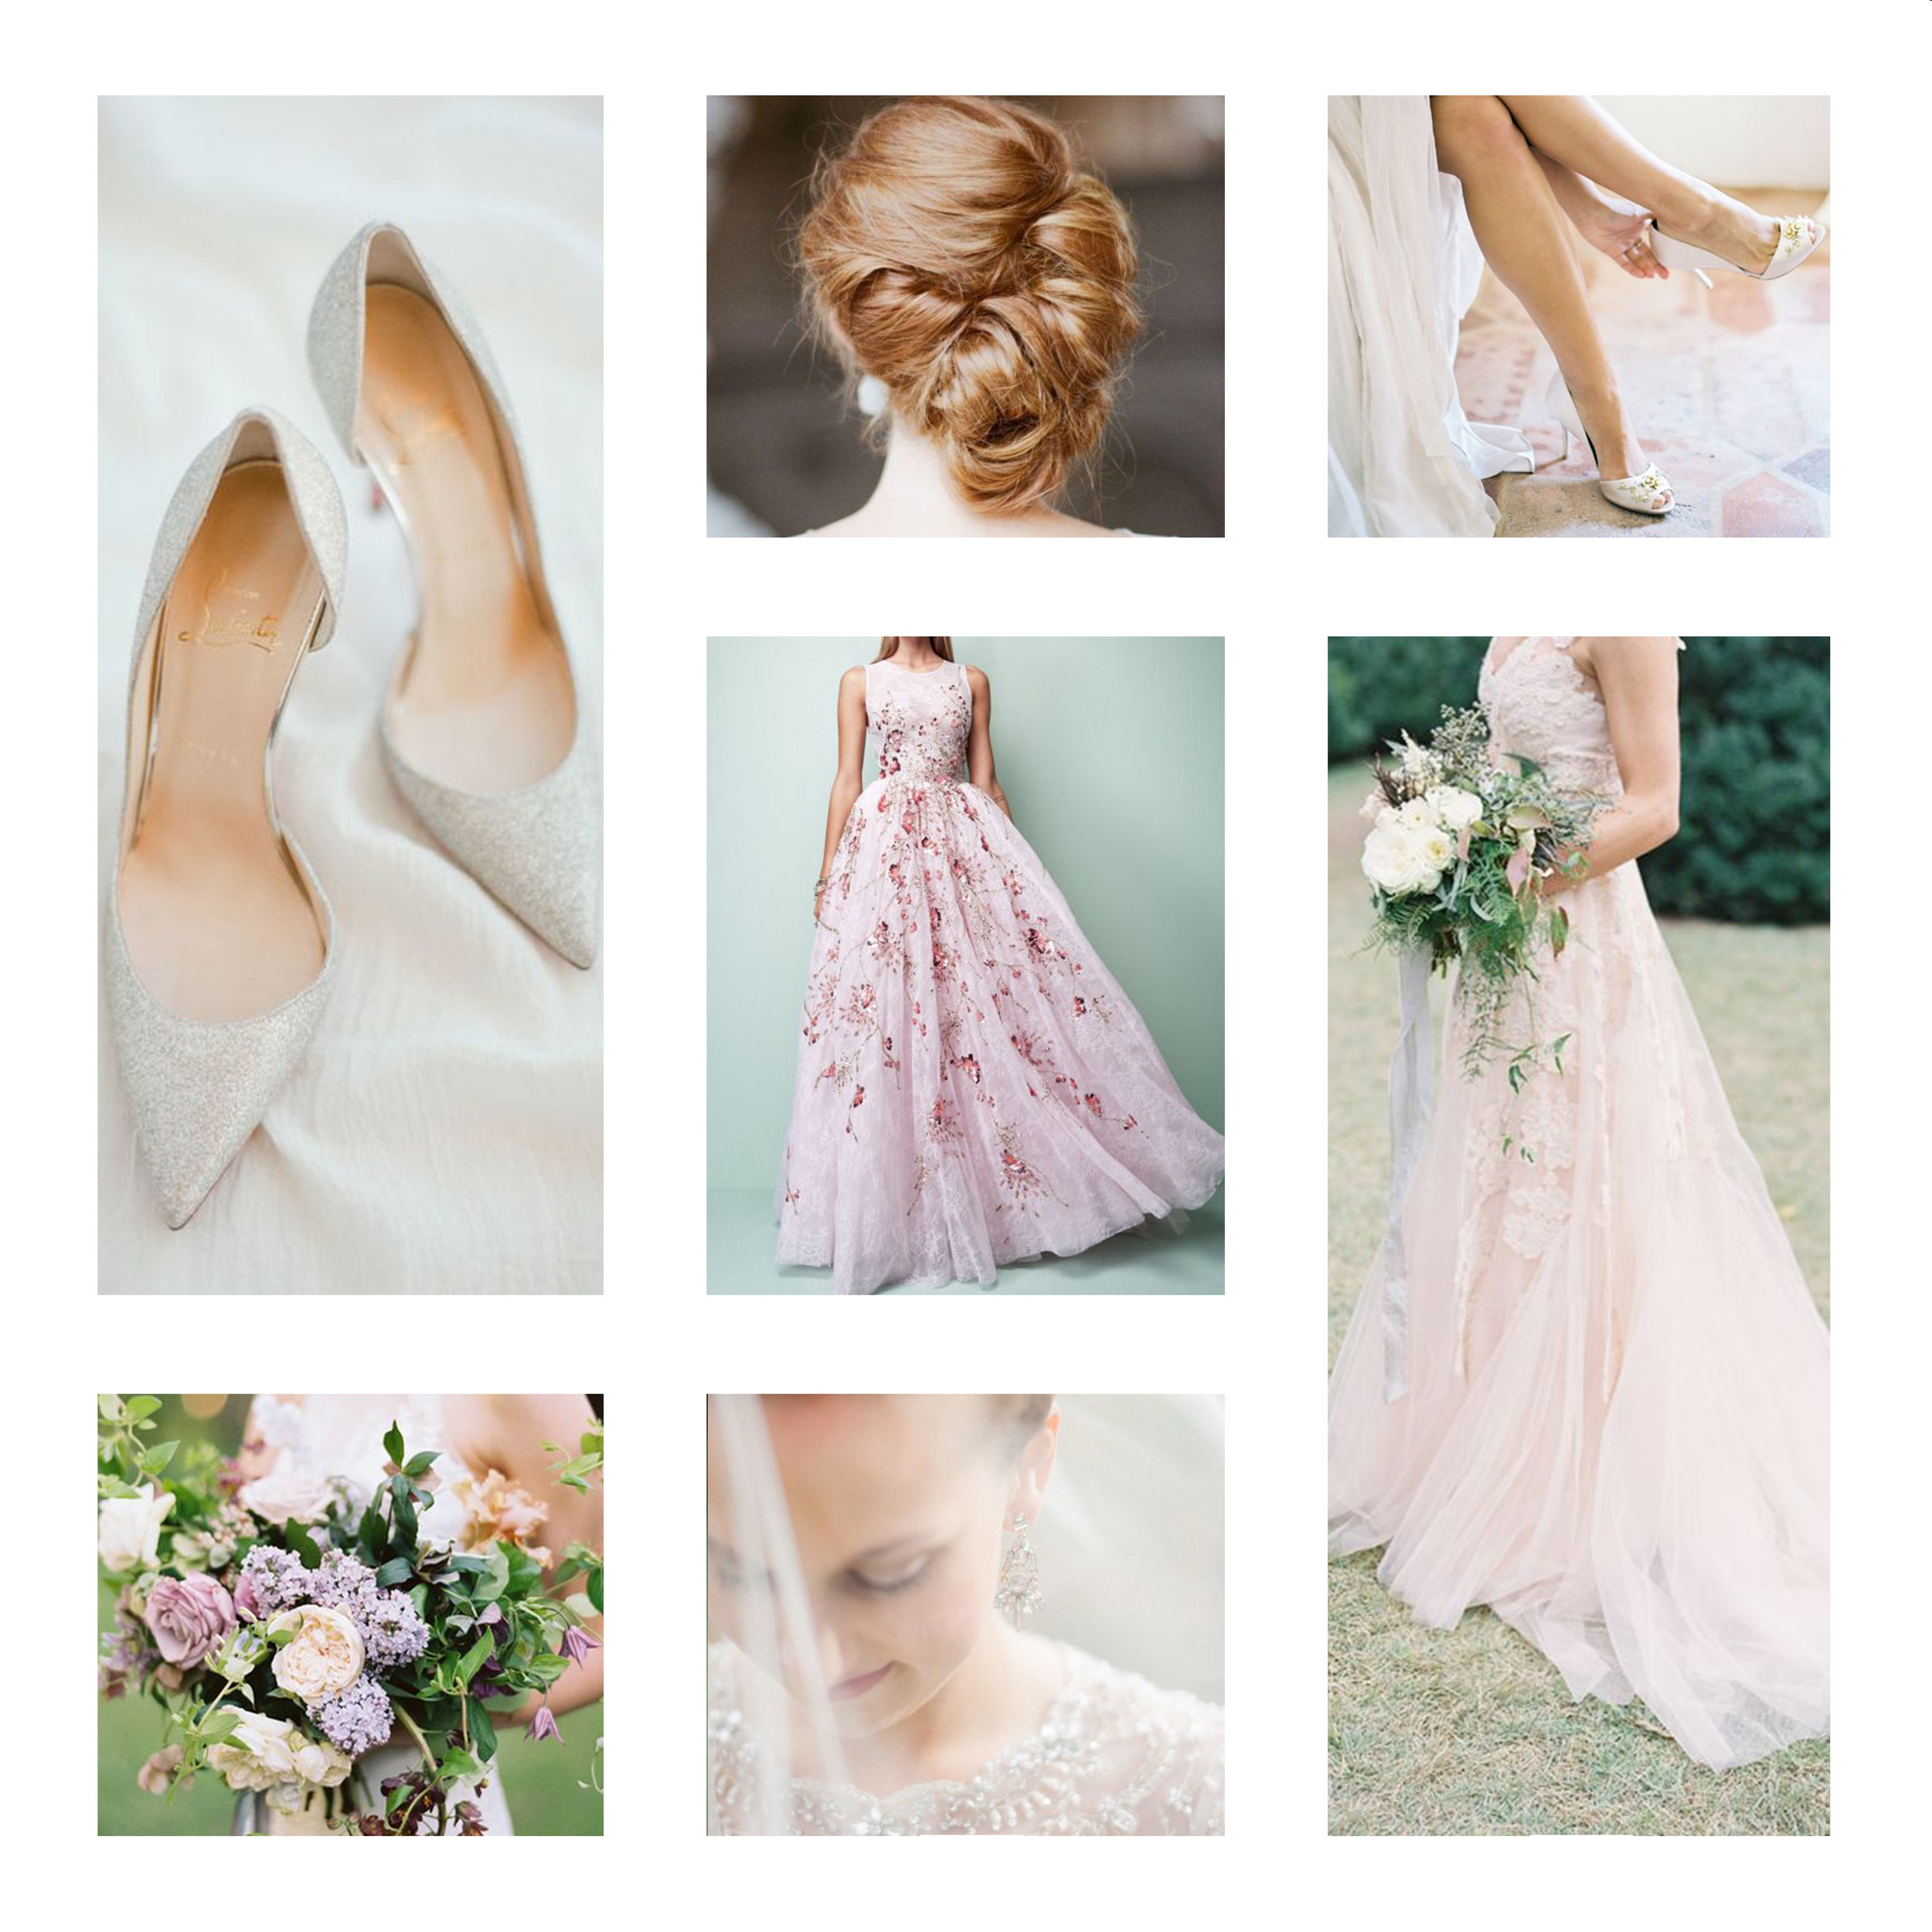 Final images selected for the photo shoot direction and designed into an inspiration board.